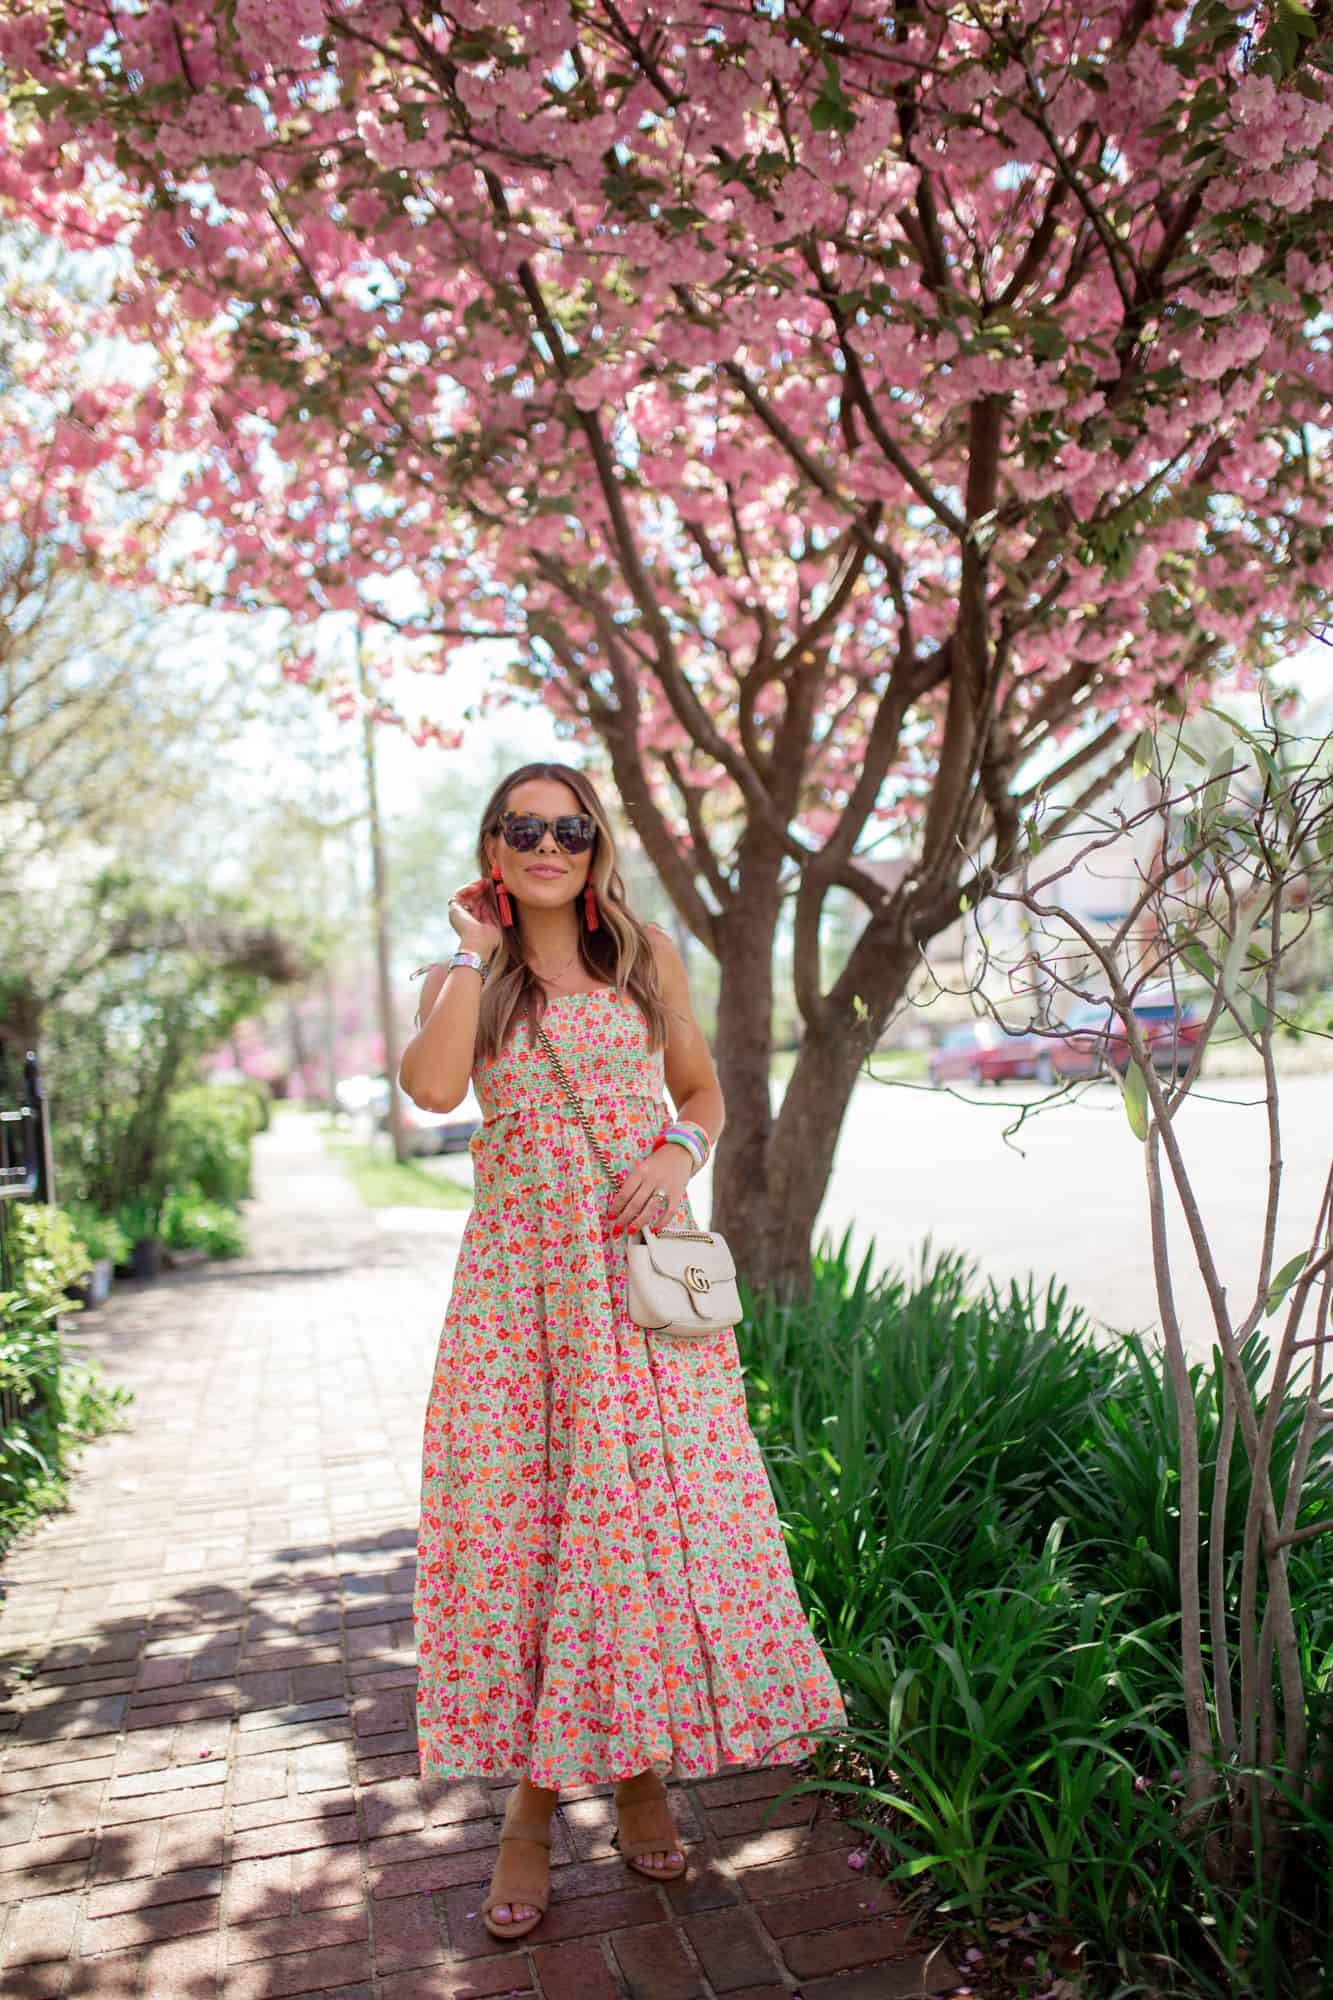 How To Style A Maxi Dress For Spring